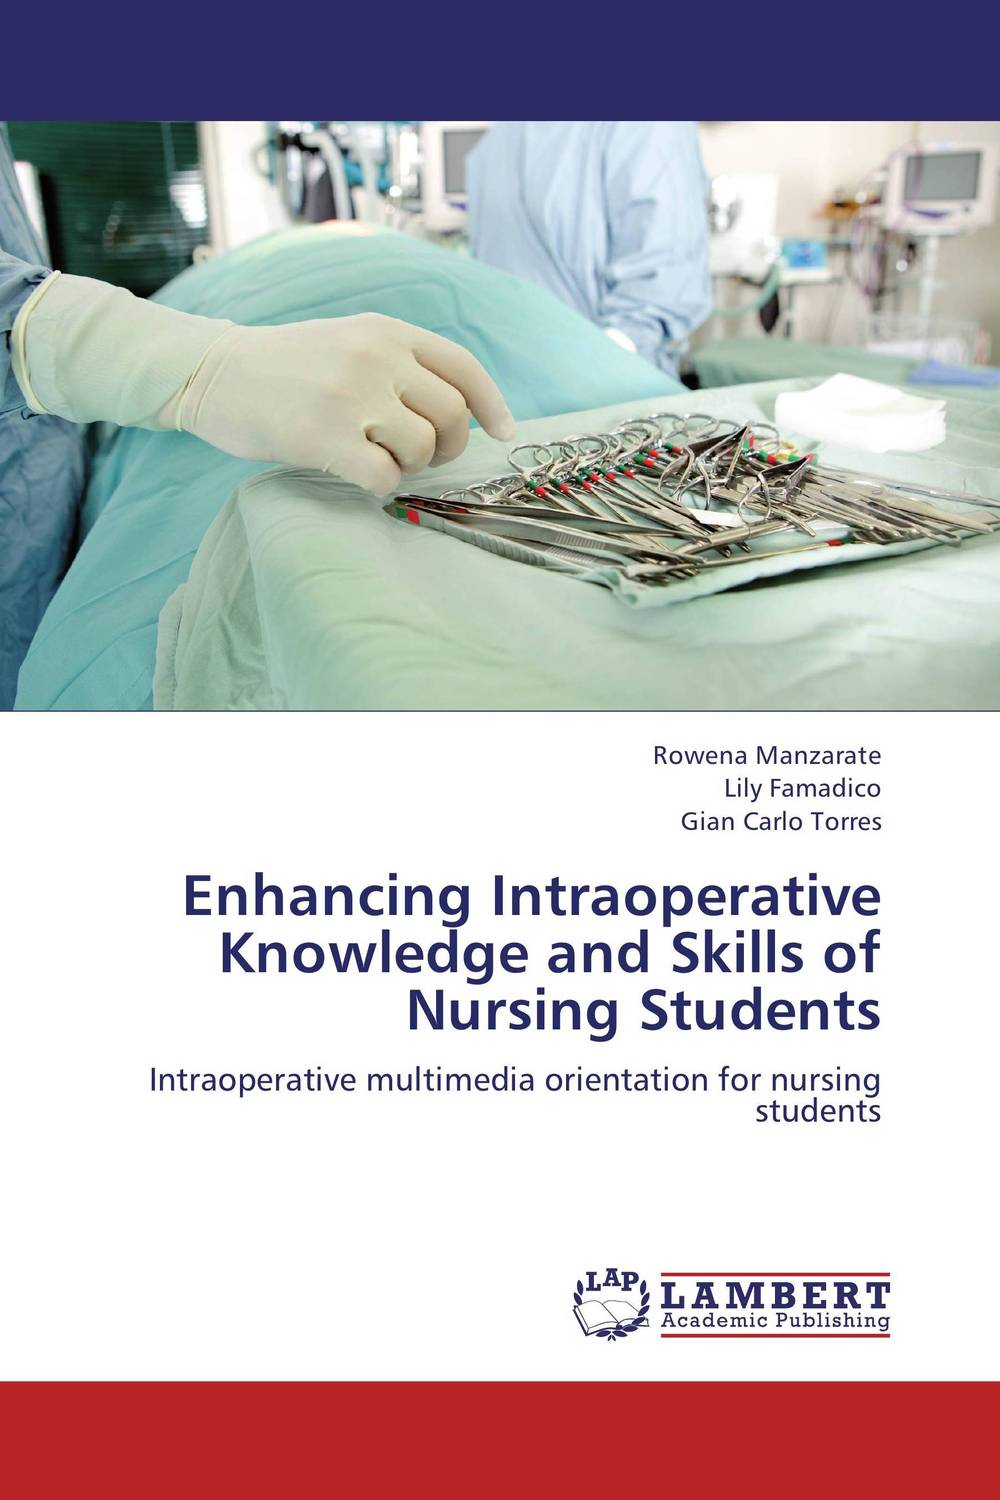 Enhancing Intraoperative Knowledge and Skills of Nursing Students whitson pediatric nursing skills manual paper o nly